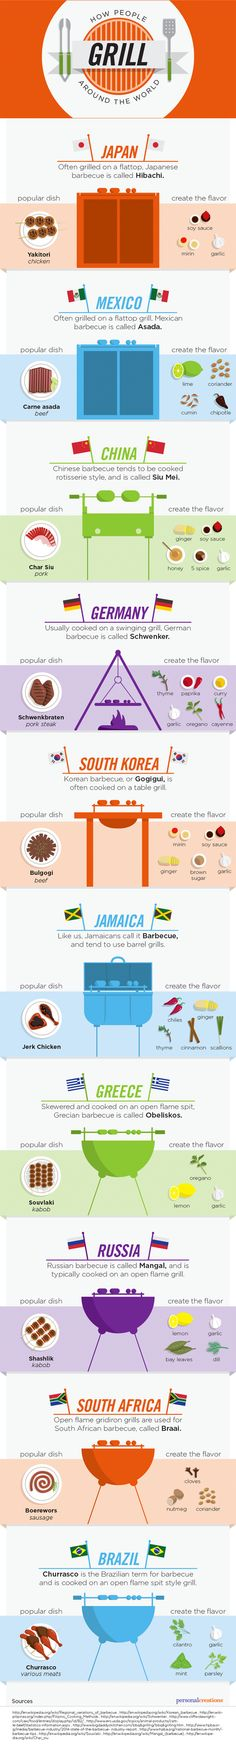 How People Grill Around the World | Mental Floss